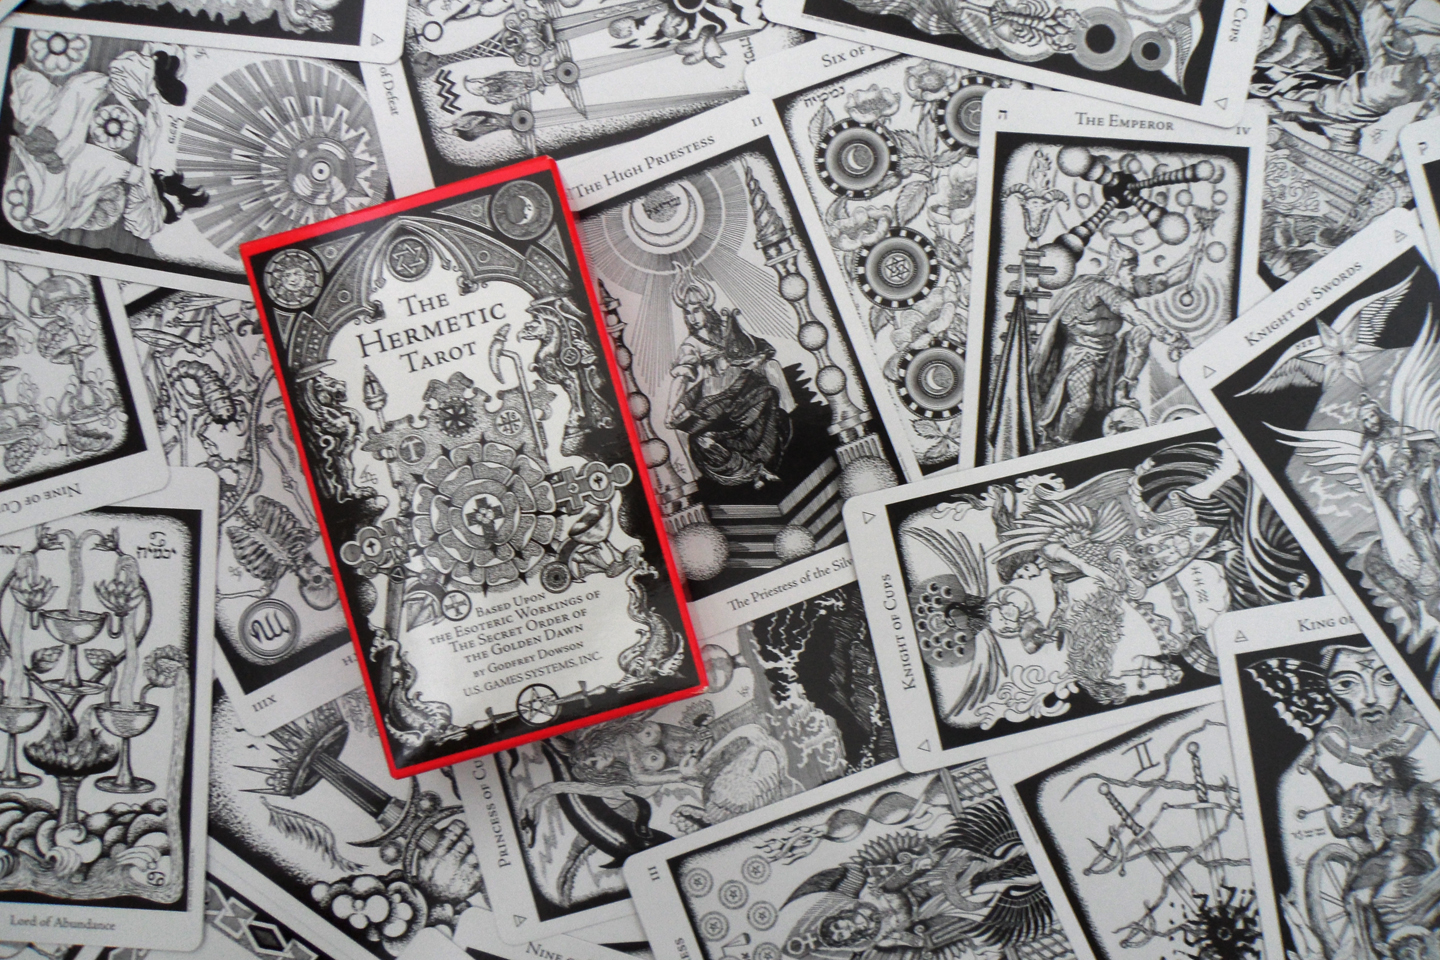 The Hermetic Tarot on astrological symbols